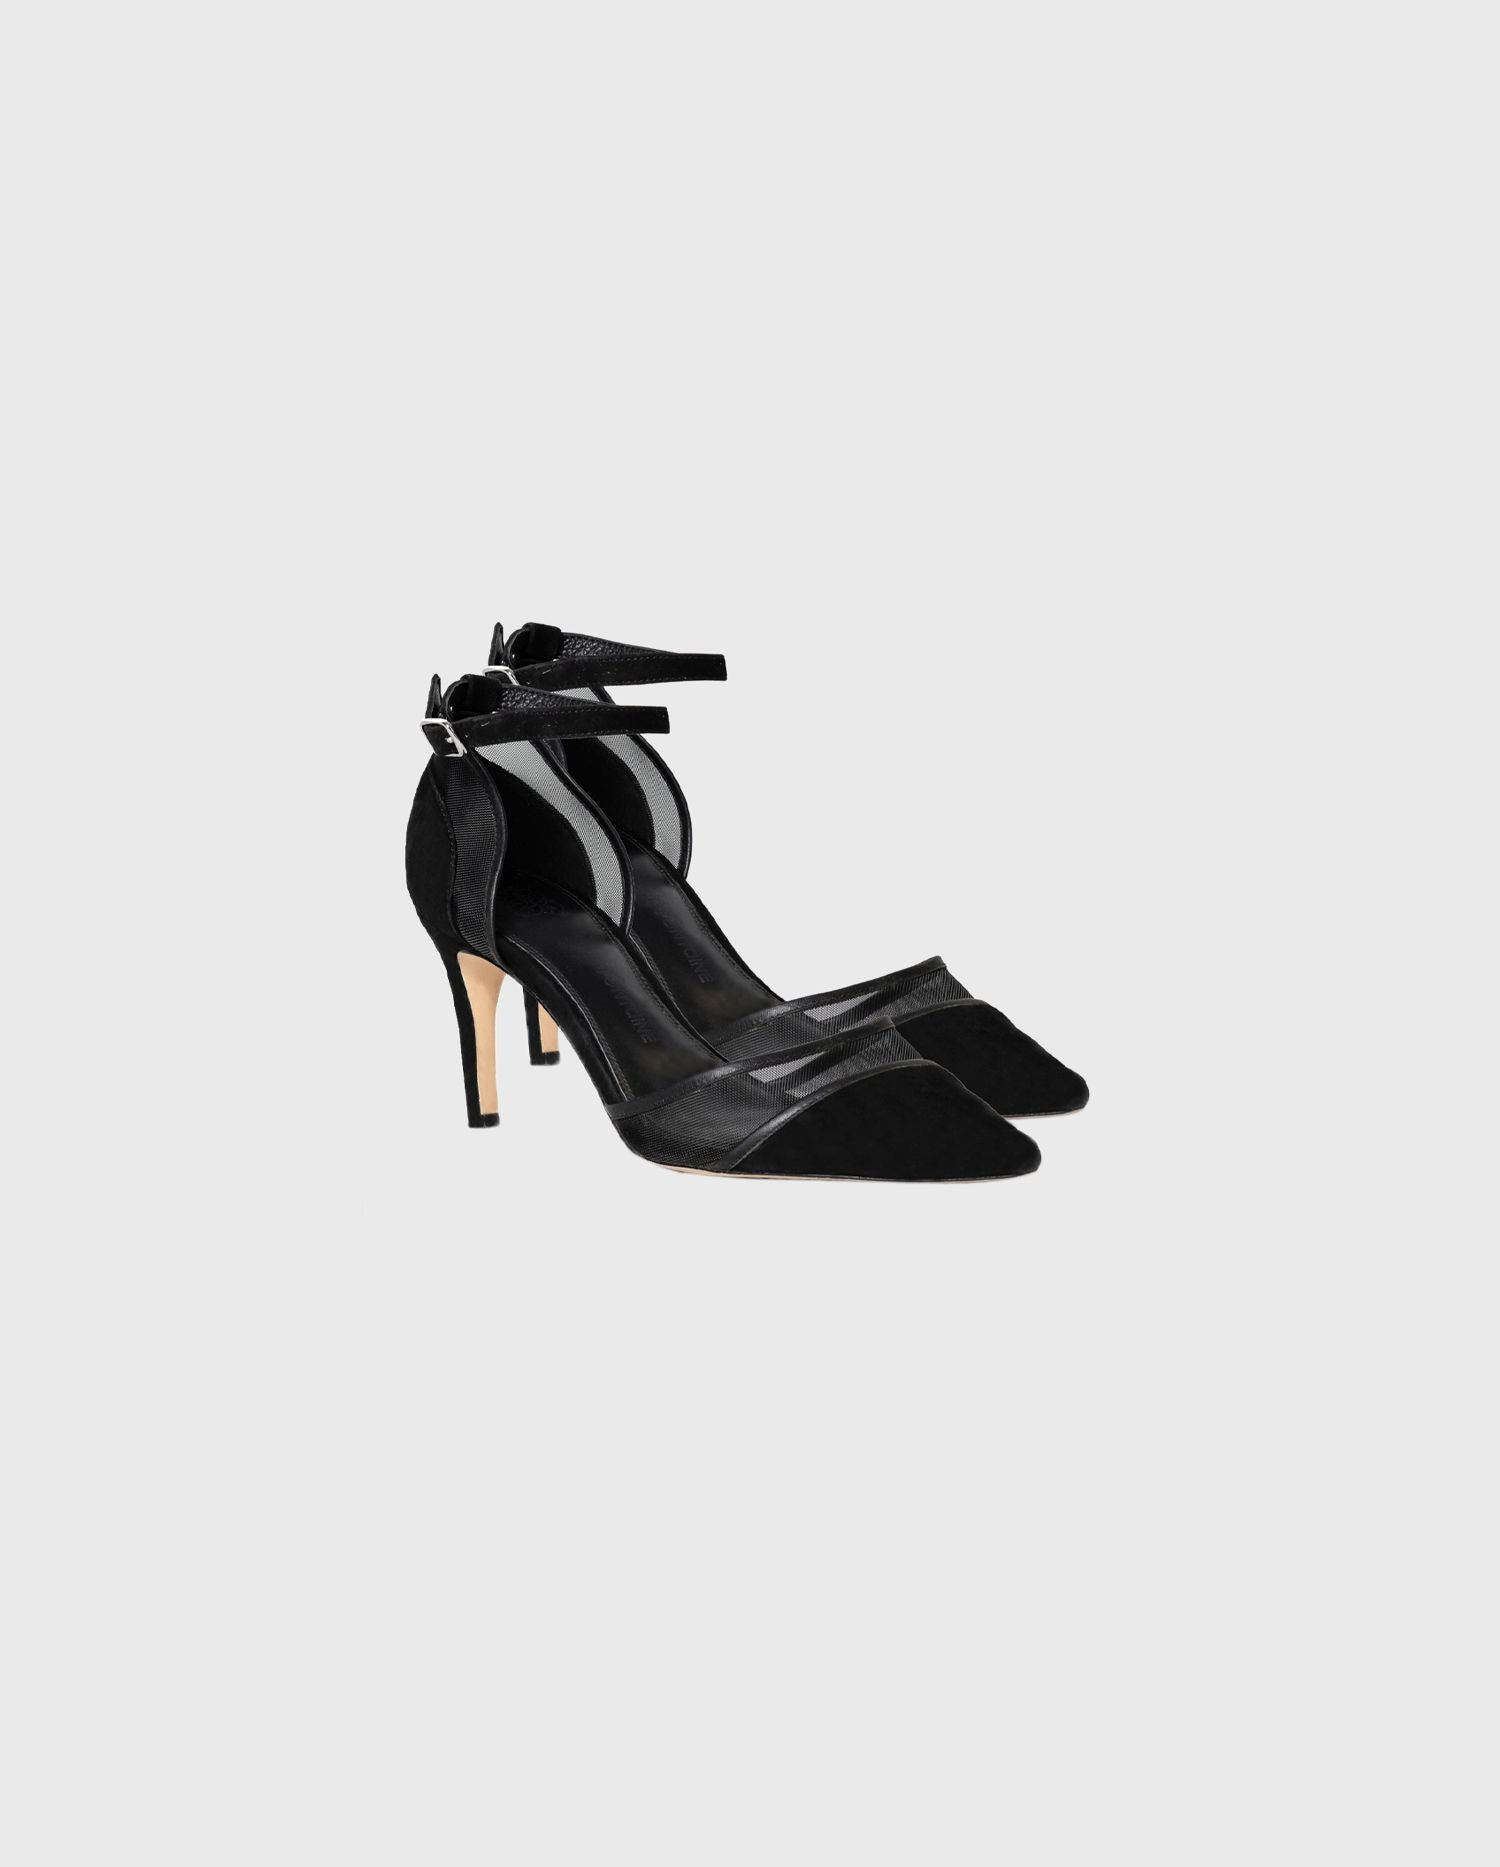 Stride into a look of effortless chic with the suede and mesh black GISELLA-ORSAY heels